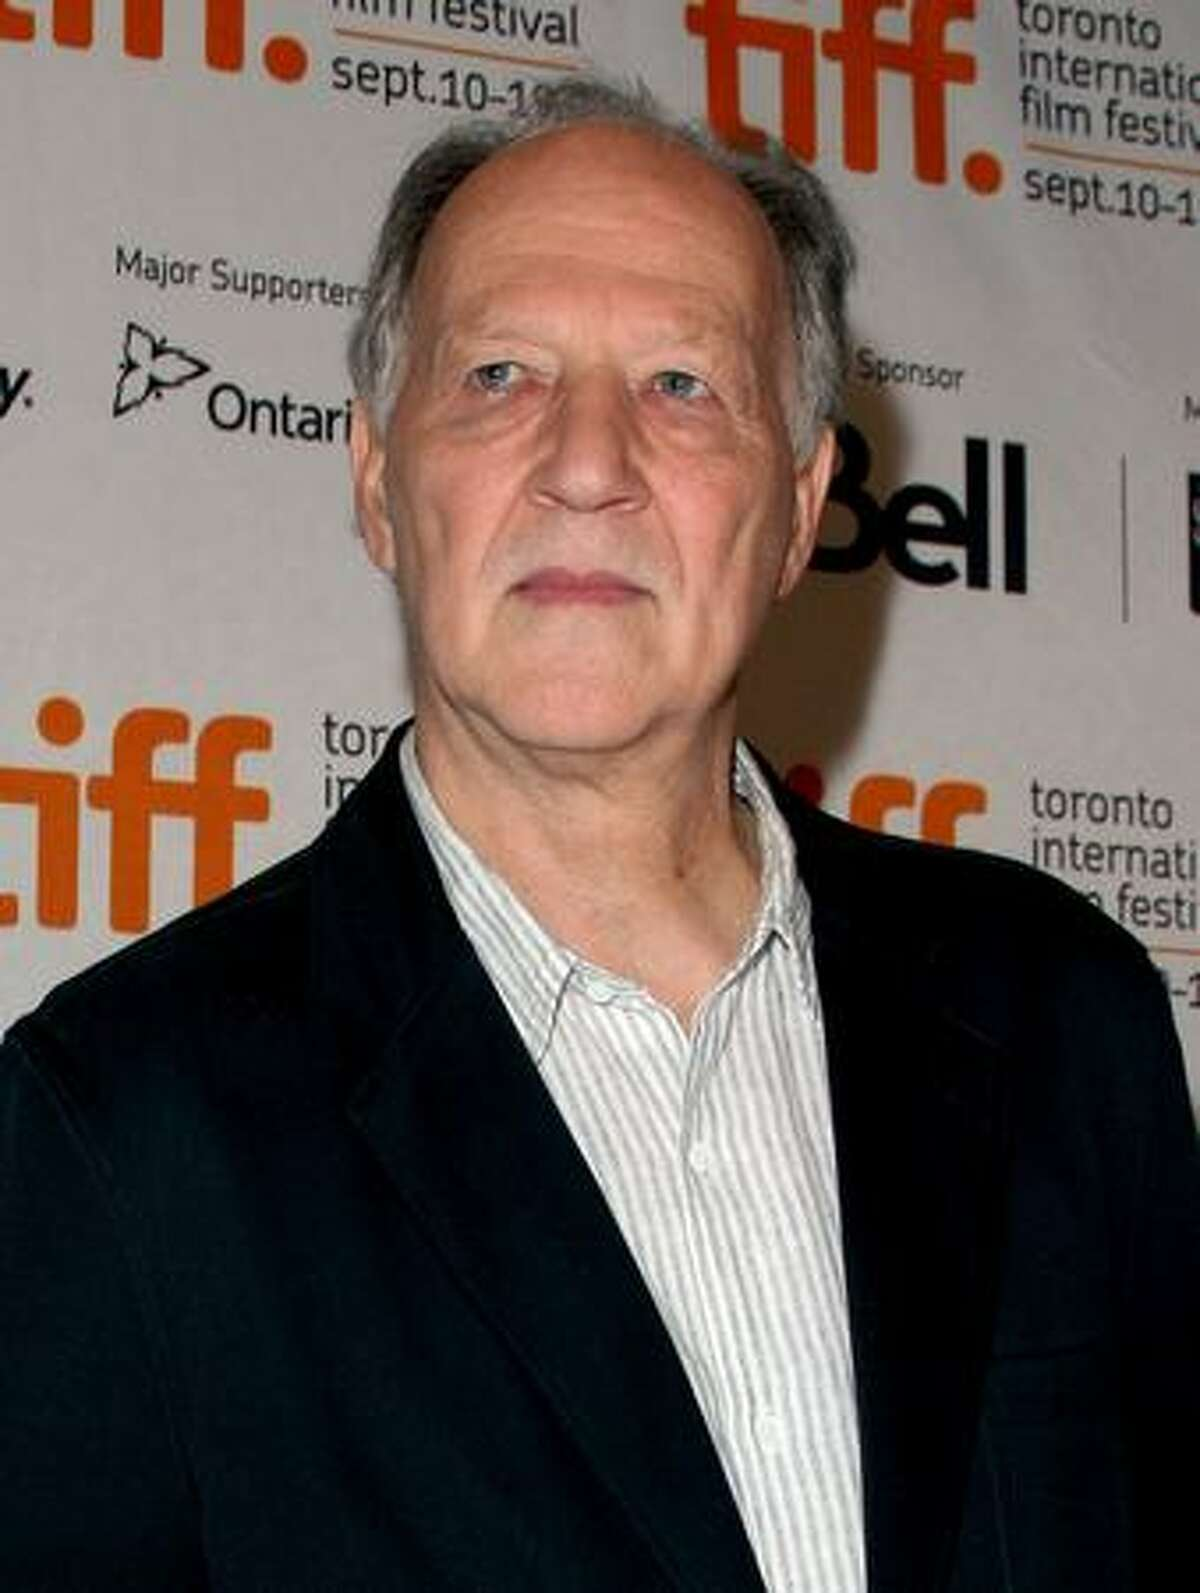 """Director Werner Herzog speaks during the """"Bad Lieutenant: Port Of Call New Orleans"""" press conference held at Sutton Place Hotel in Toronto, Canada."""